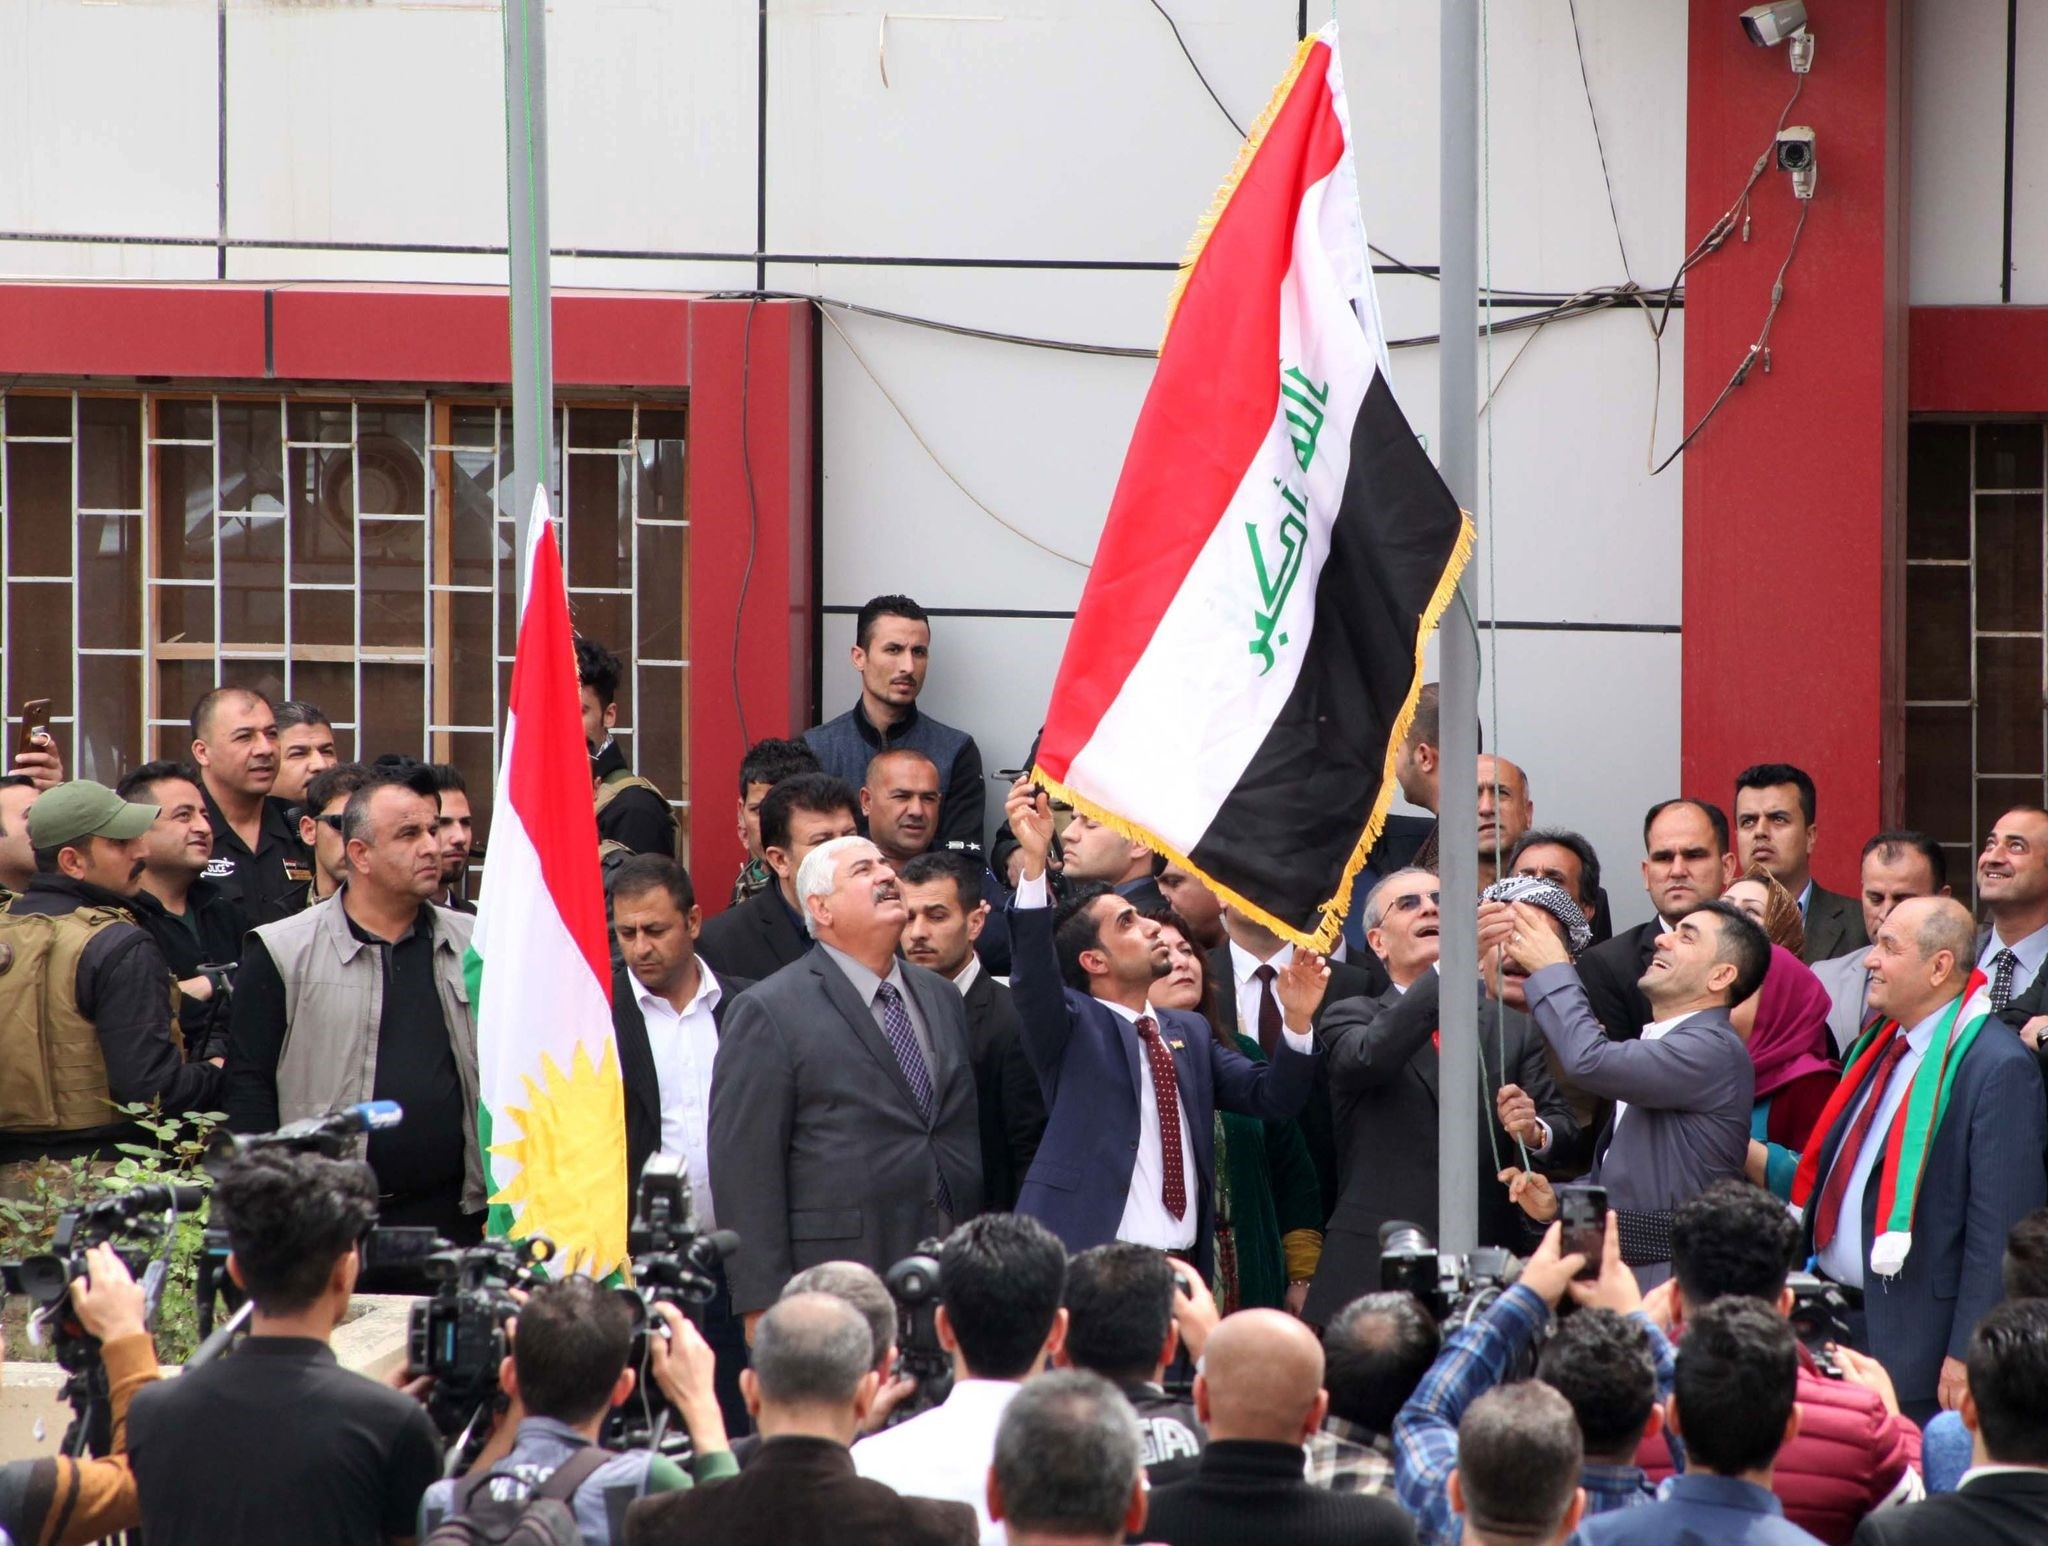 Kirkuk provincial Governor Najim al-Din Karim (C-R) raises the Iraqi flag to fly next to the Kurdish flag over a government building in the northern Iraqi city of Kirkuk on March 28. (AFP Photo)